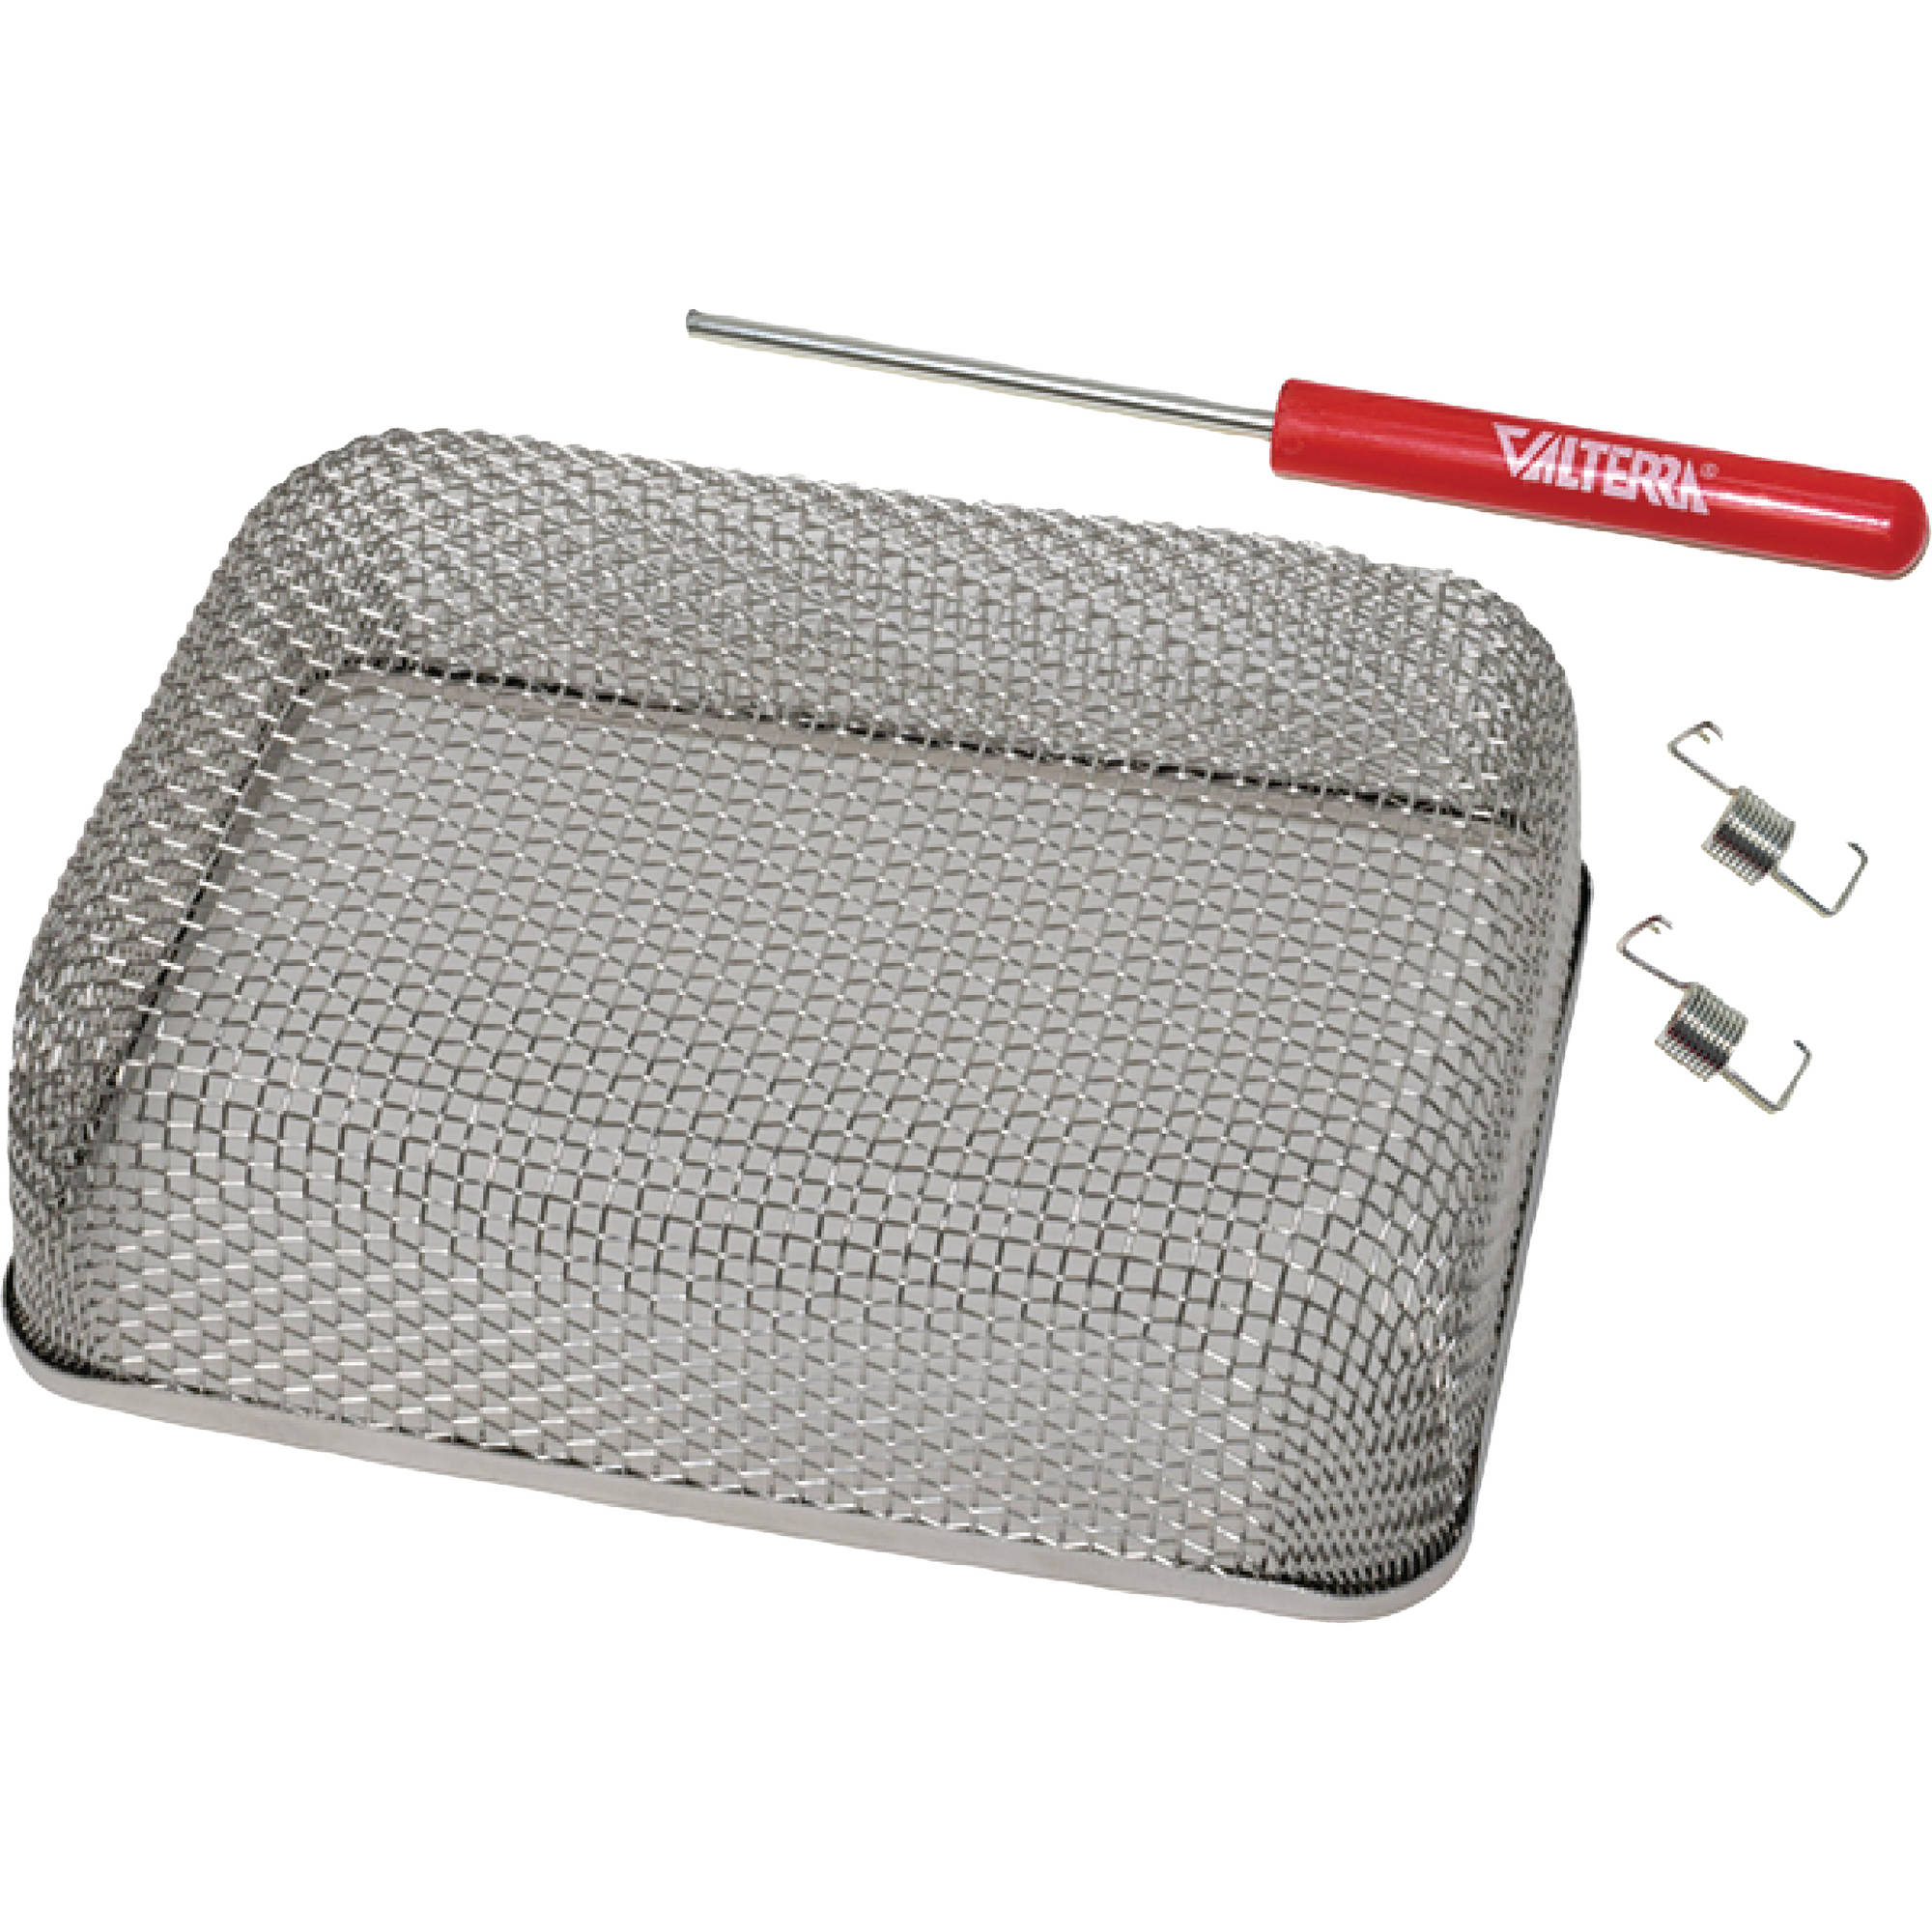 Valterra A10-1305VP Stainless Steel Mesh Cover Bug Screen for RV Furnace Vent & Includes Installation Tool & Fasteners